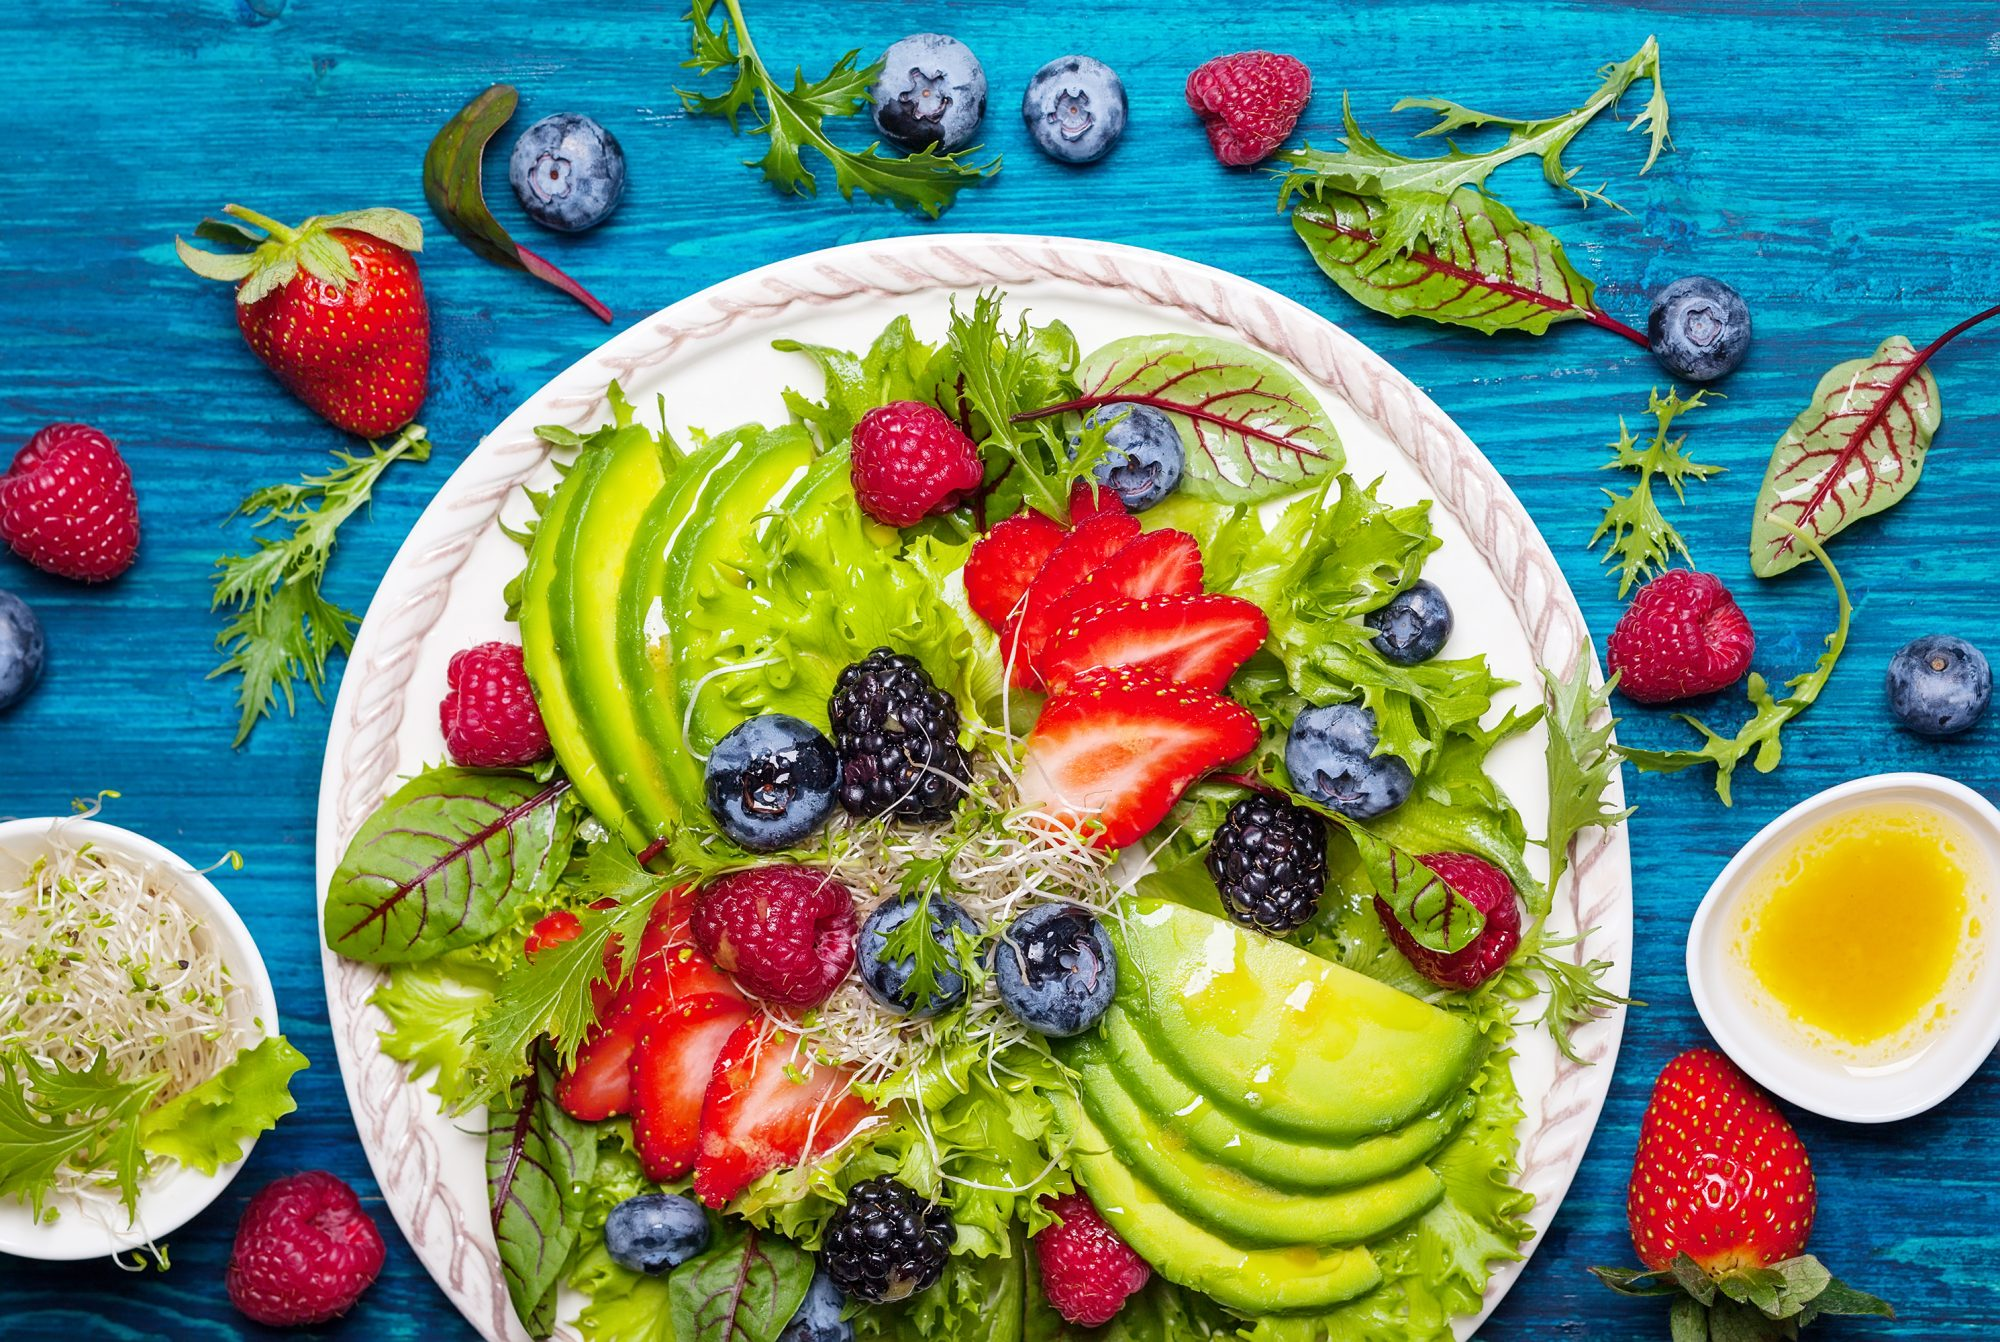 Longevity Diet and Nutrition: What to Eat to Live Longer and Stay Healthy as You Age: fruits and vegetables on a plate